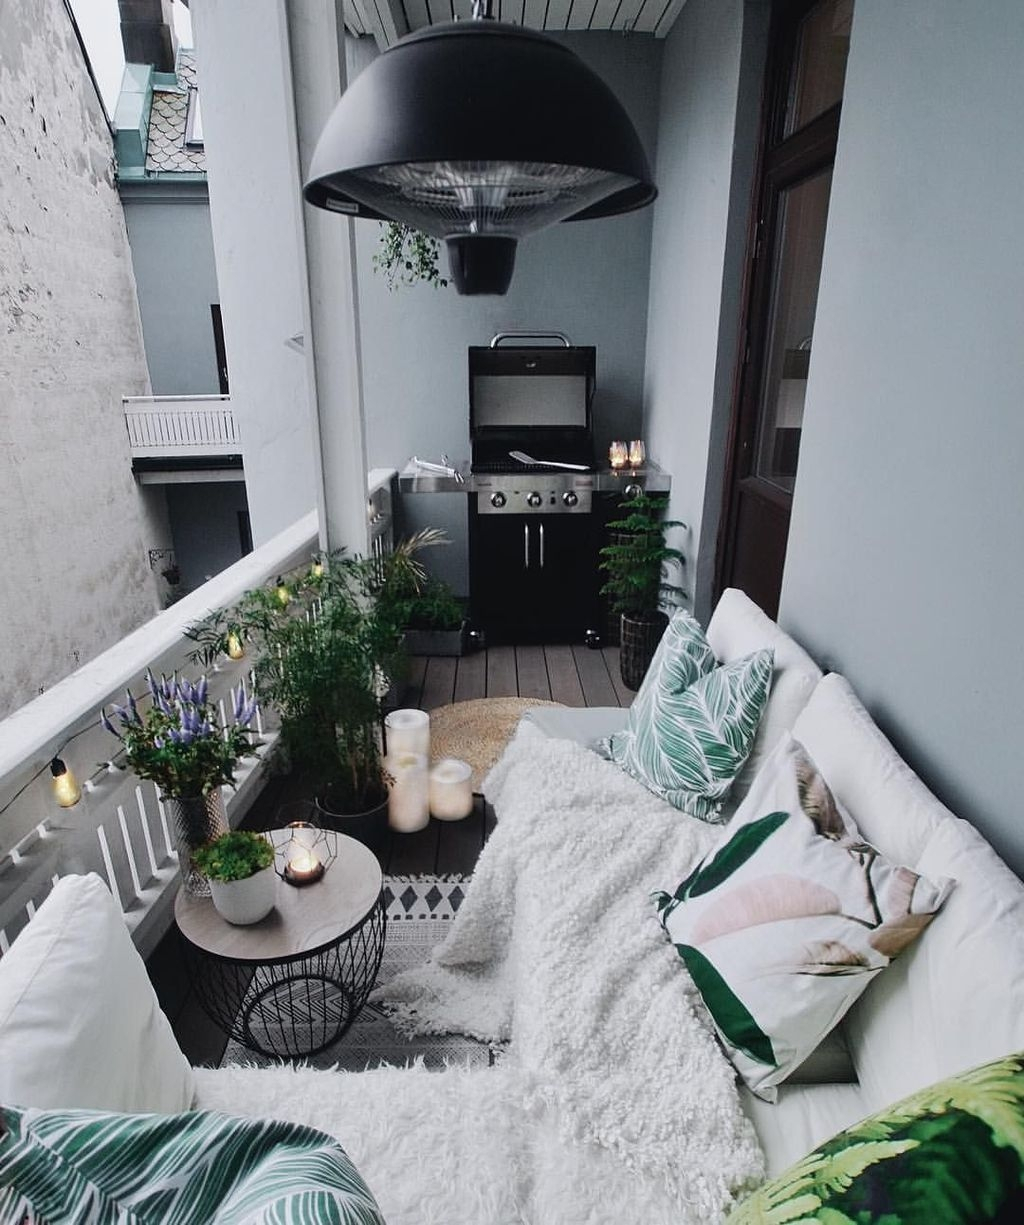 Superb Apartment Balcony Decorating Ideas To Try44